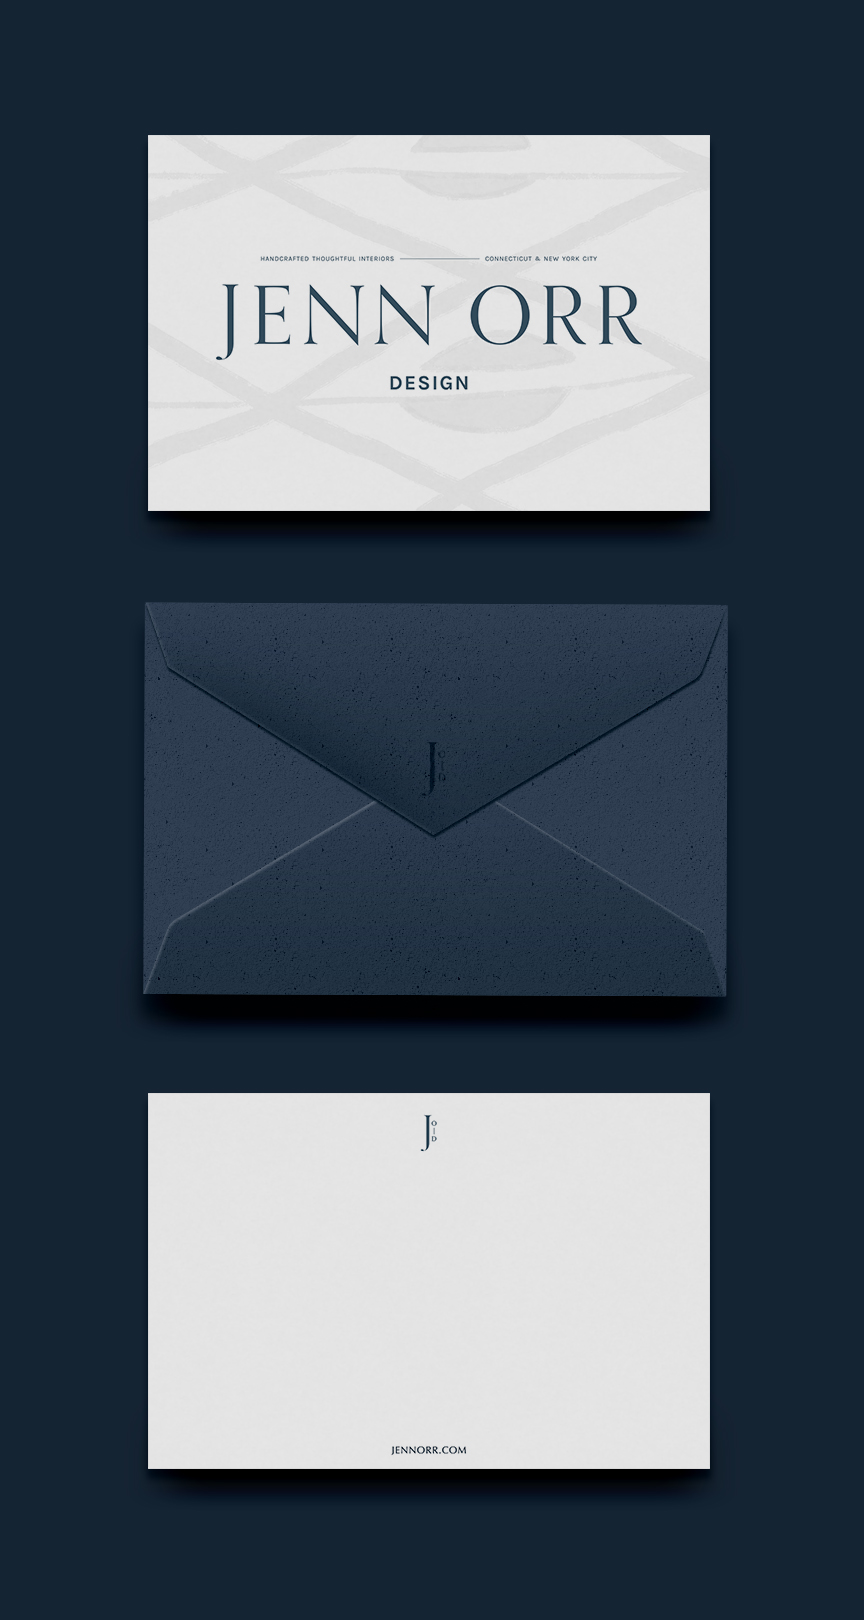 stationery and notecard designs | Timeless, Classic, Neutral brand design for interior designer | by Reux Design Co.